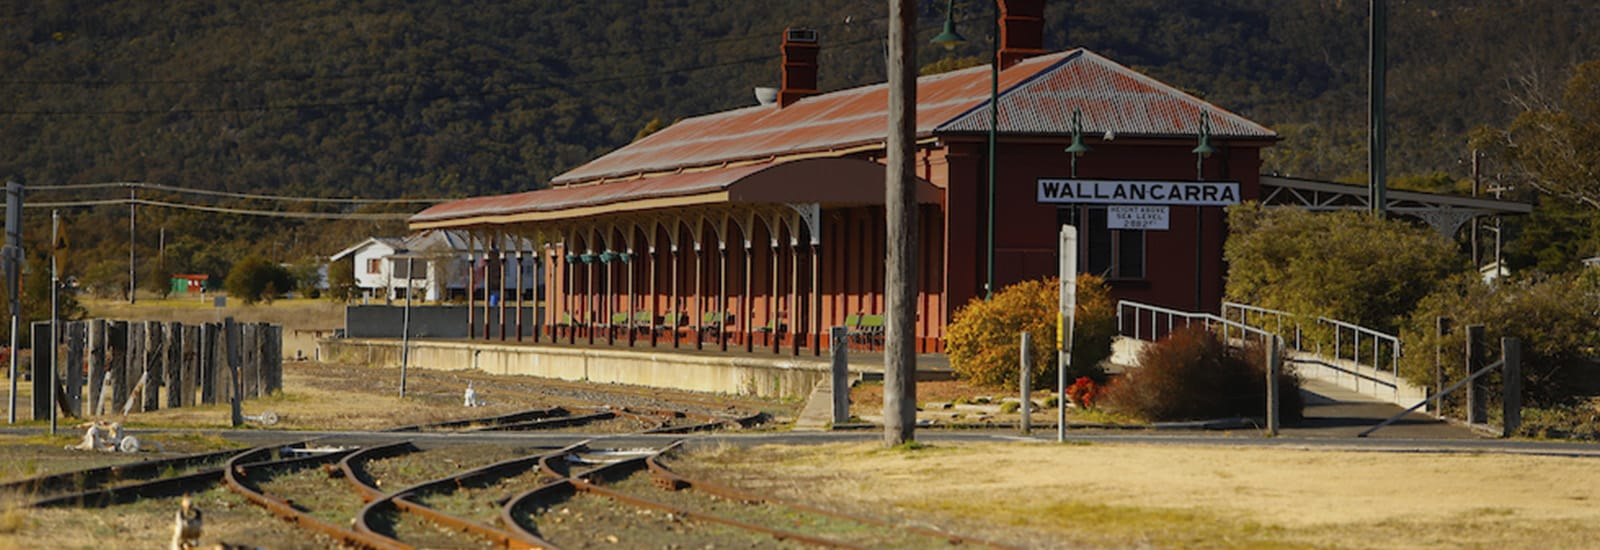 wallangarra train station